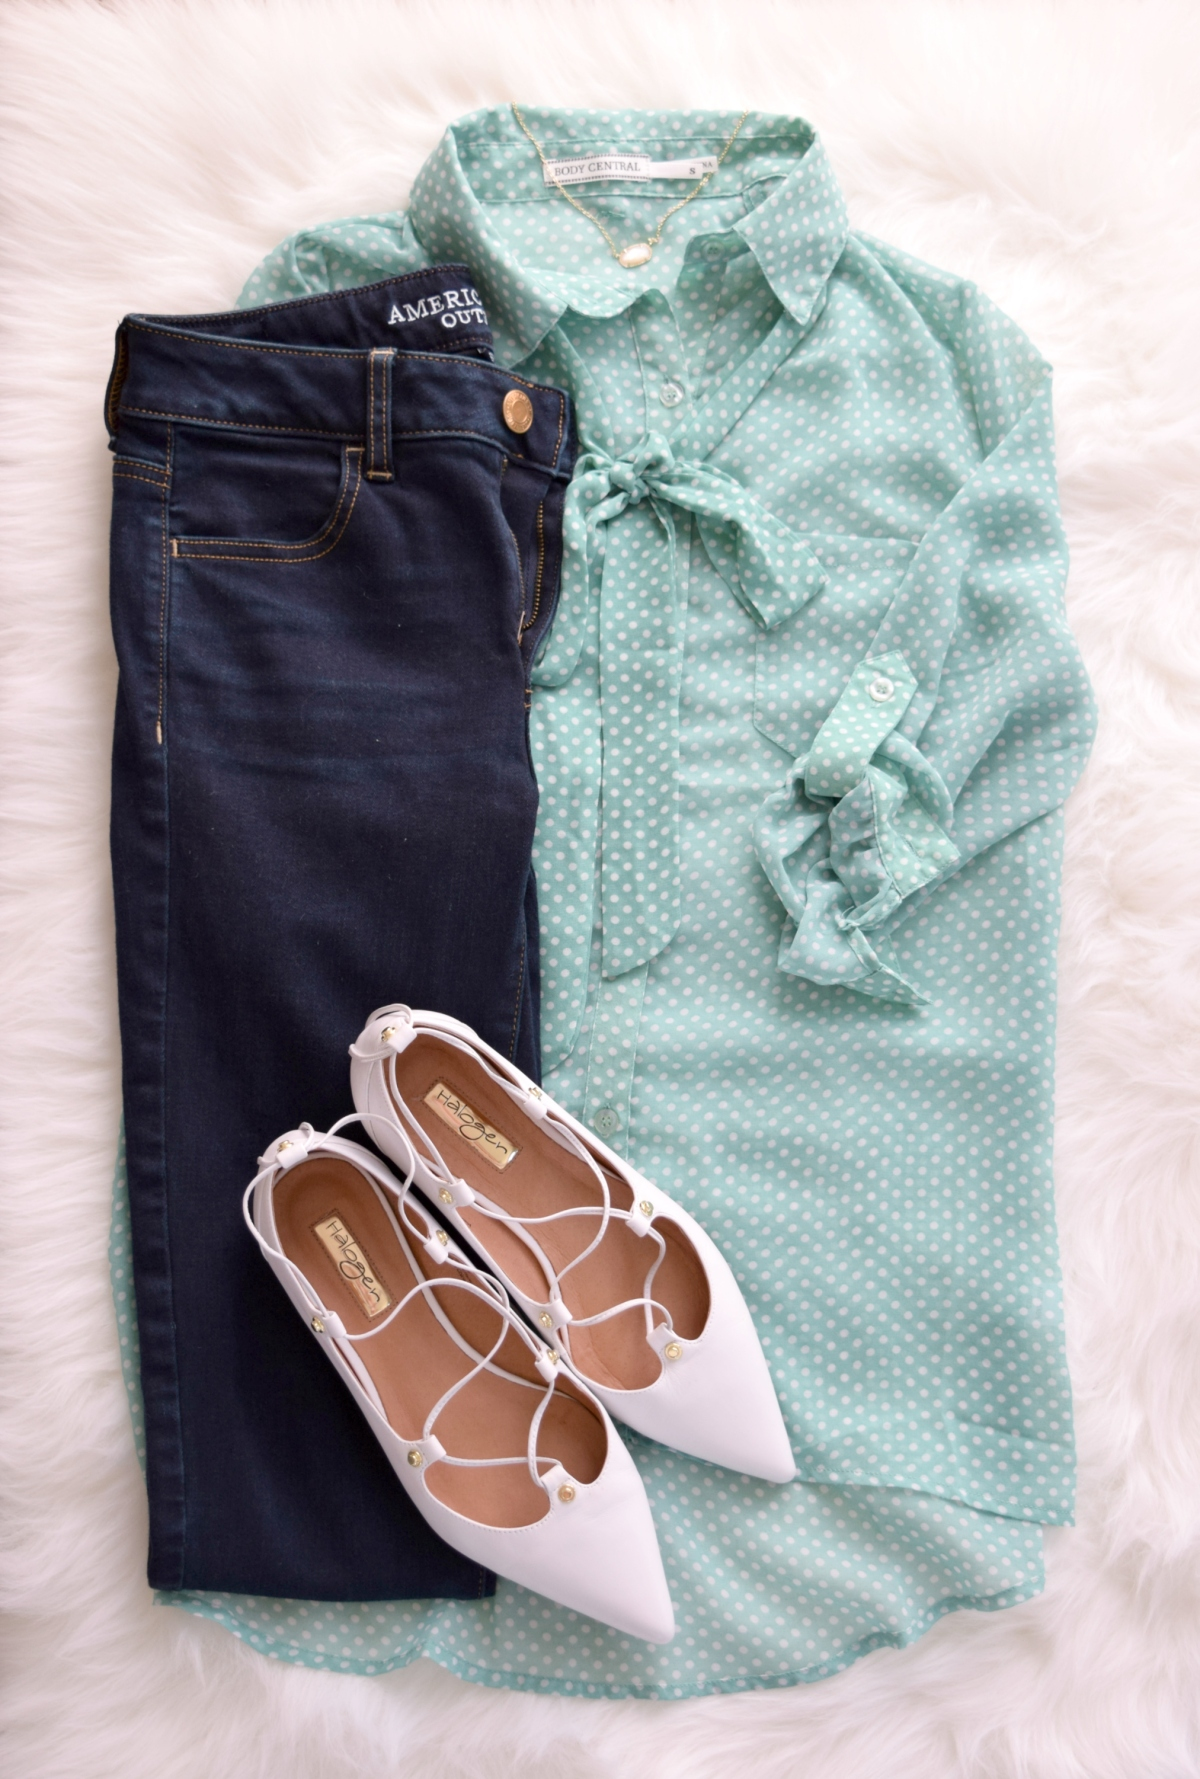 Polka dots and ghillie flats, a polished causal look |www.pearlsandsportsbras.com|